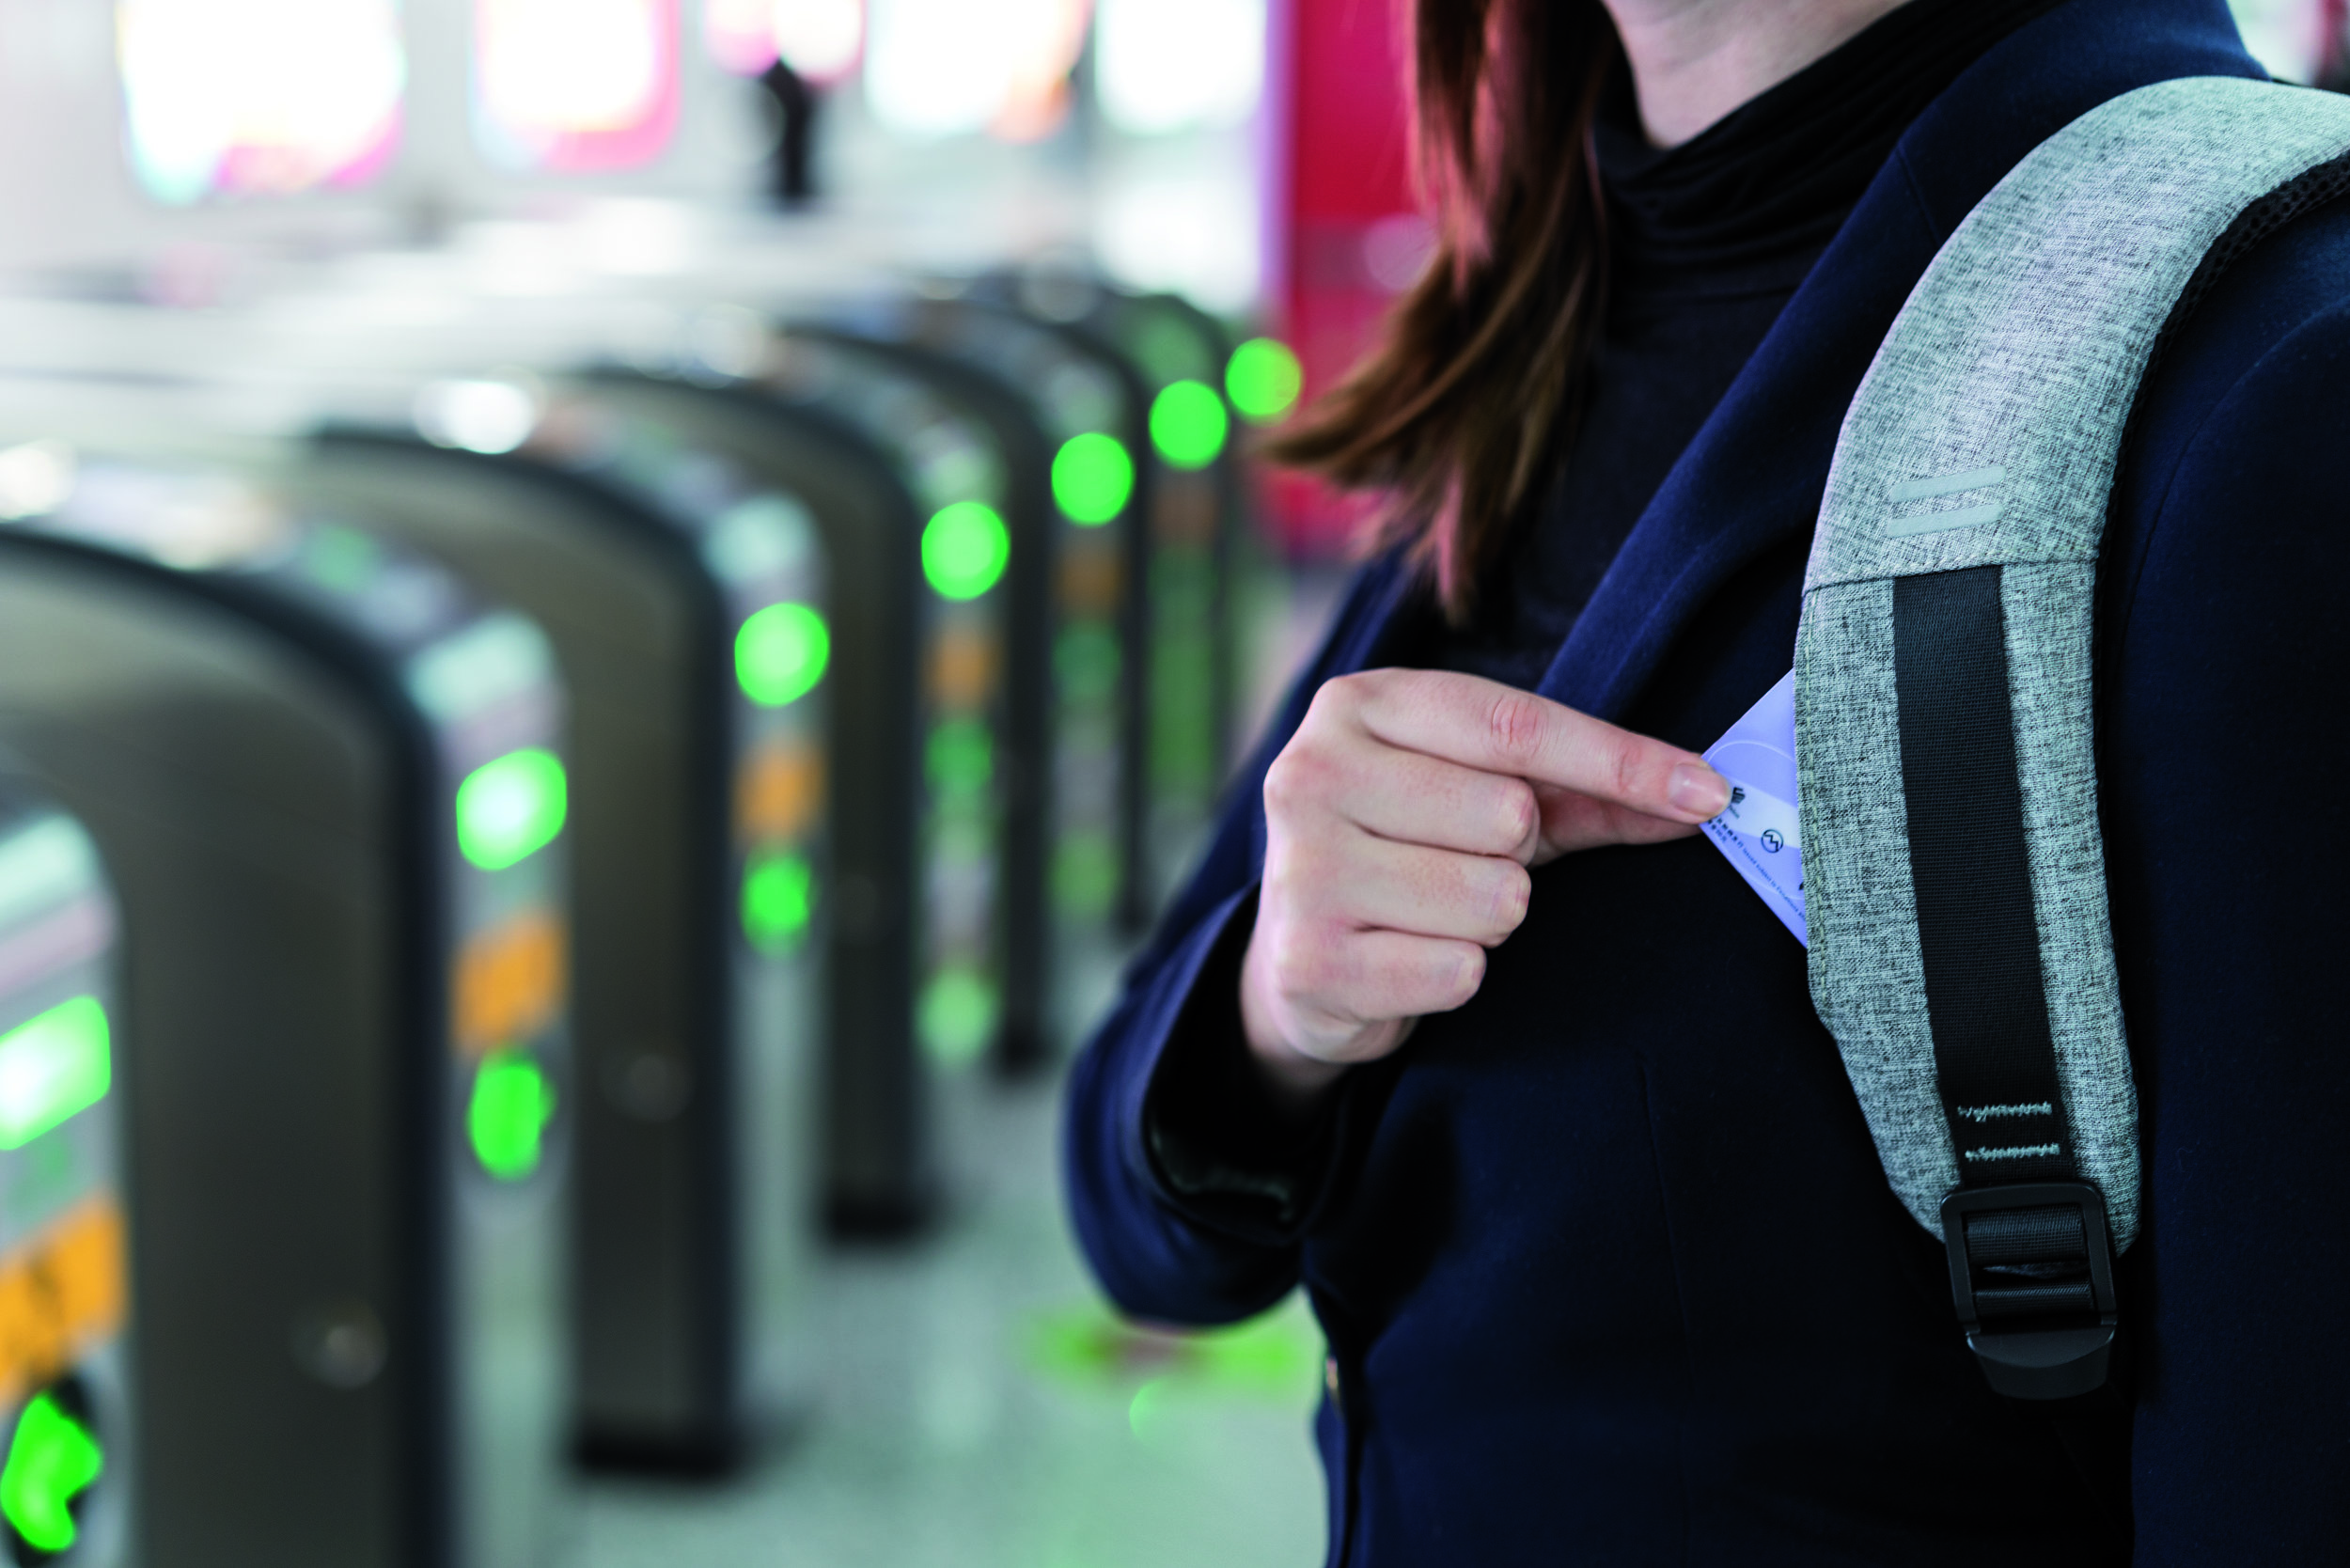 Each strap has a pocket for quick access to your transit card.